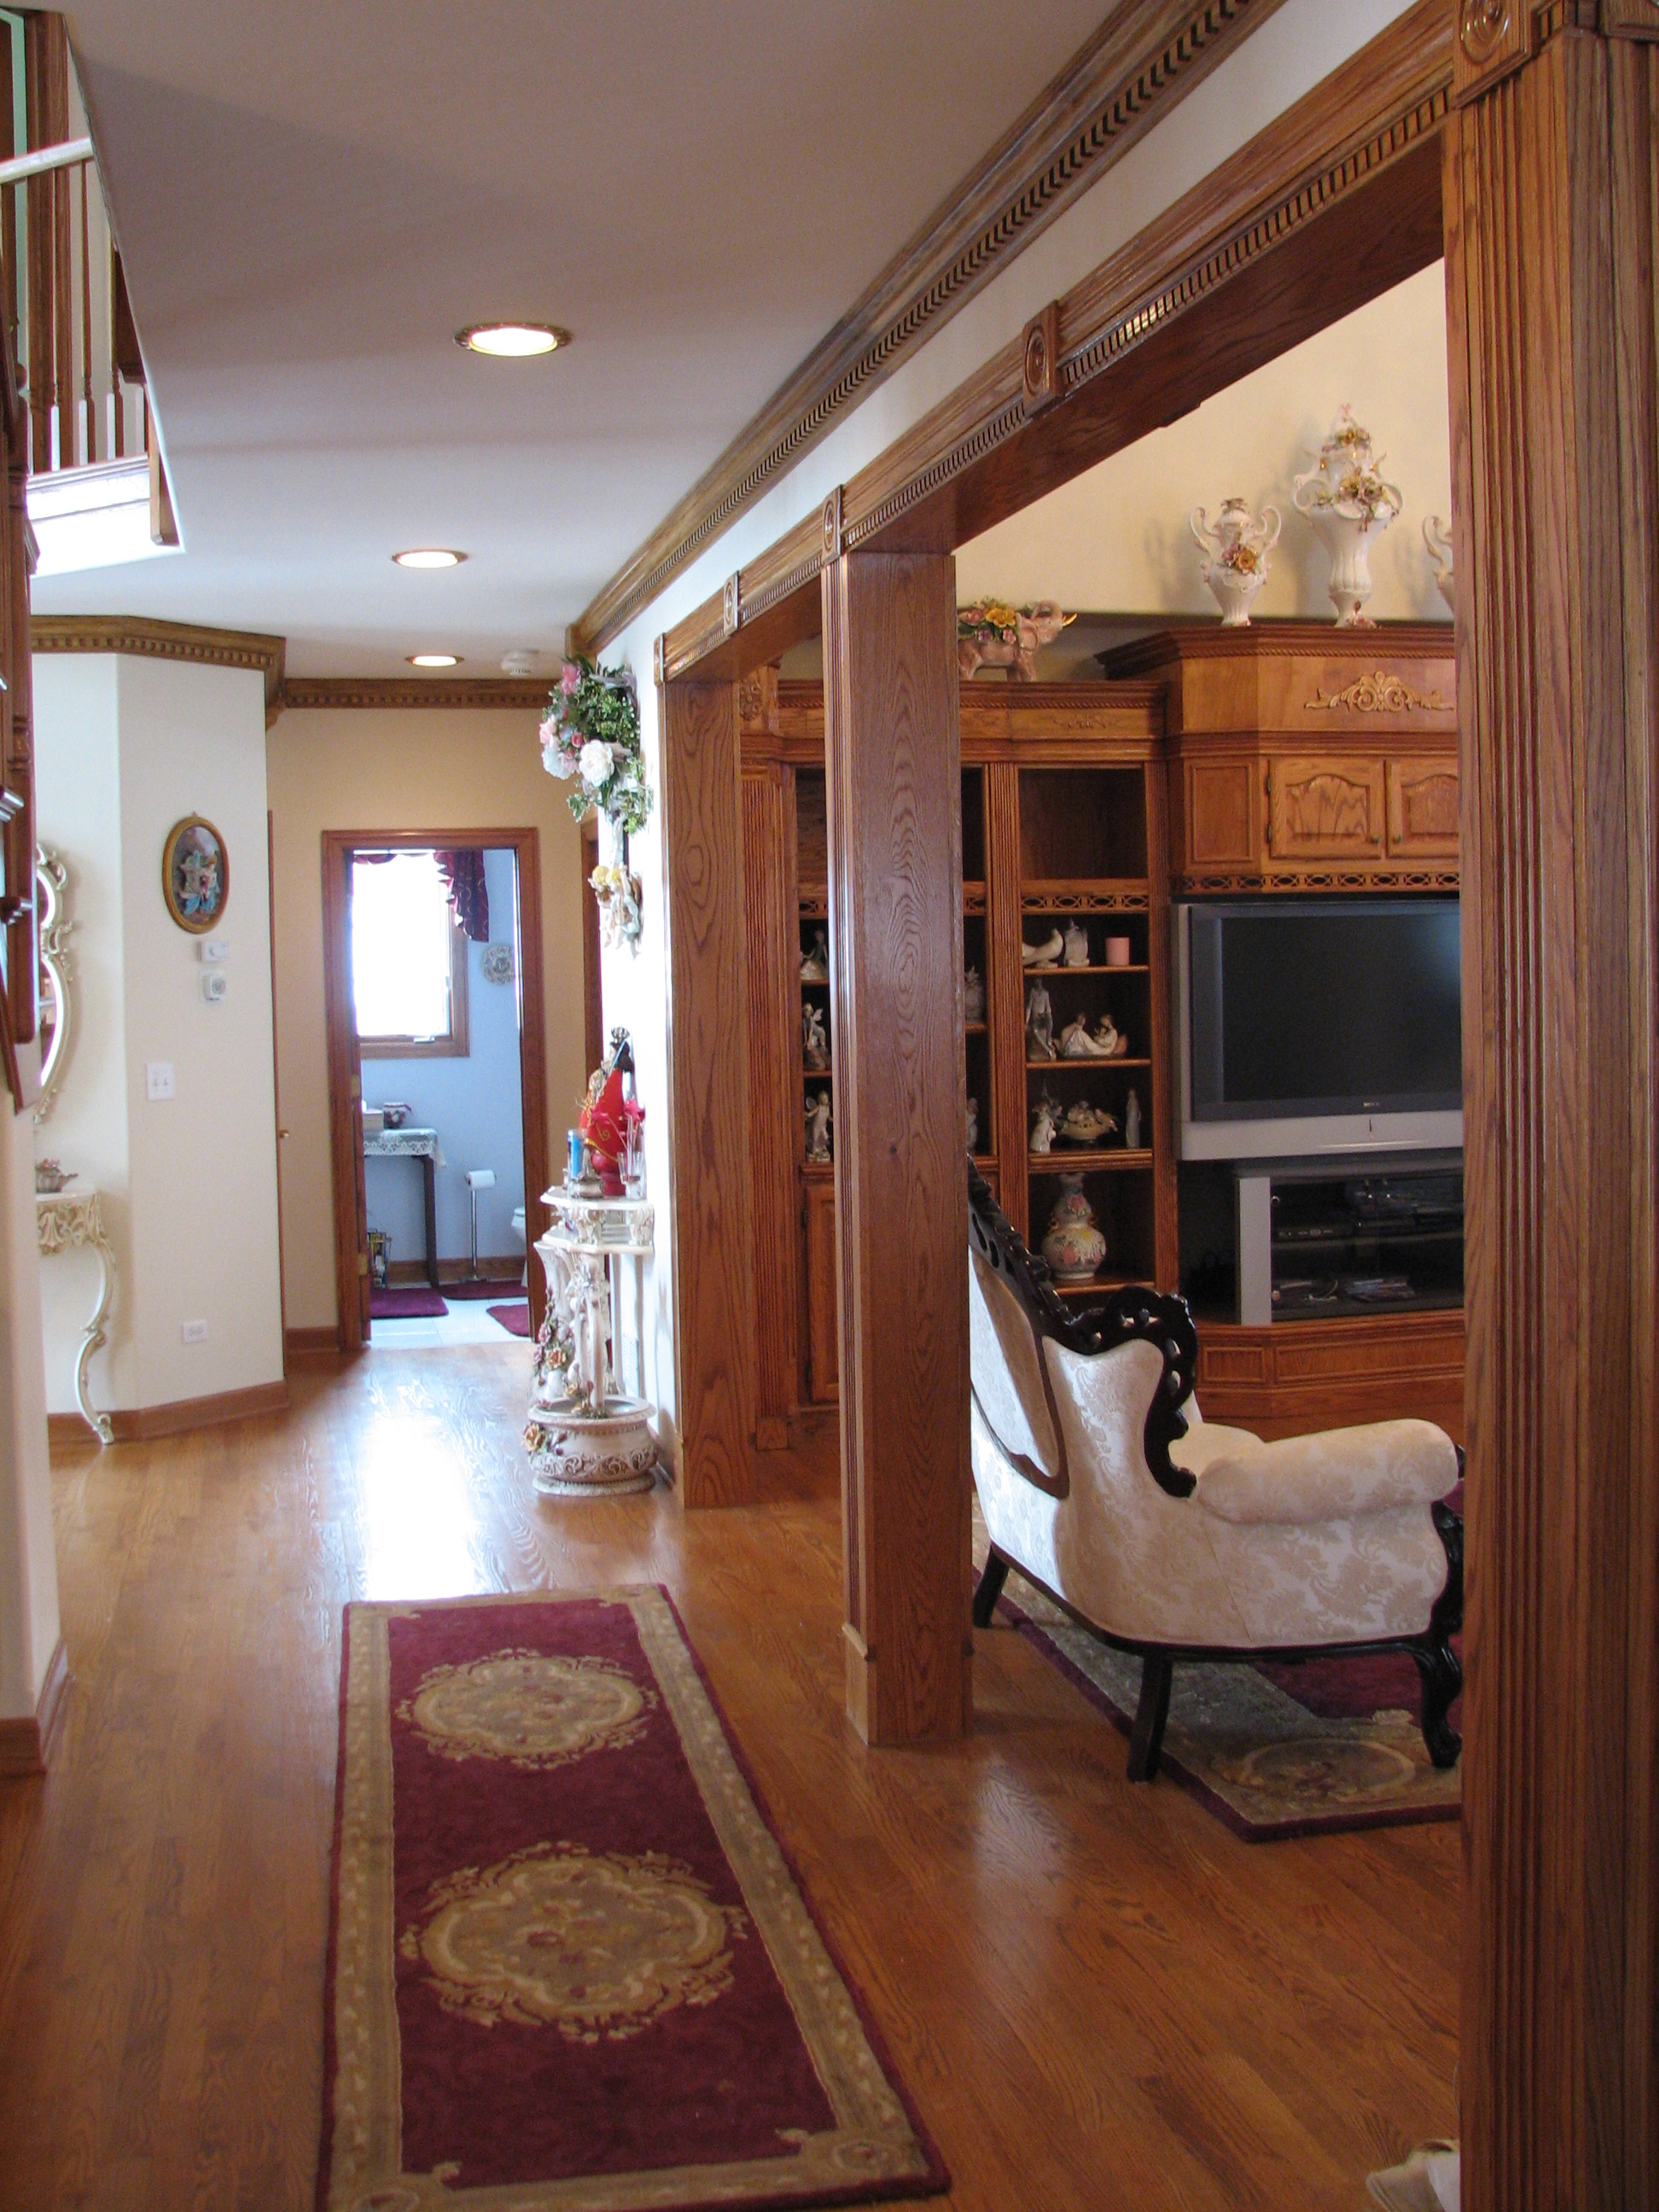 chicago palos park tinley park crestwood oak forest painting contractor wallpaper carpentry ceramic tile vinyl tile wood molding